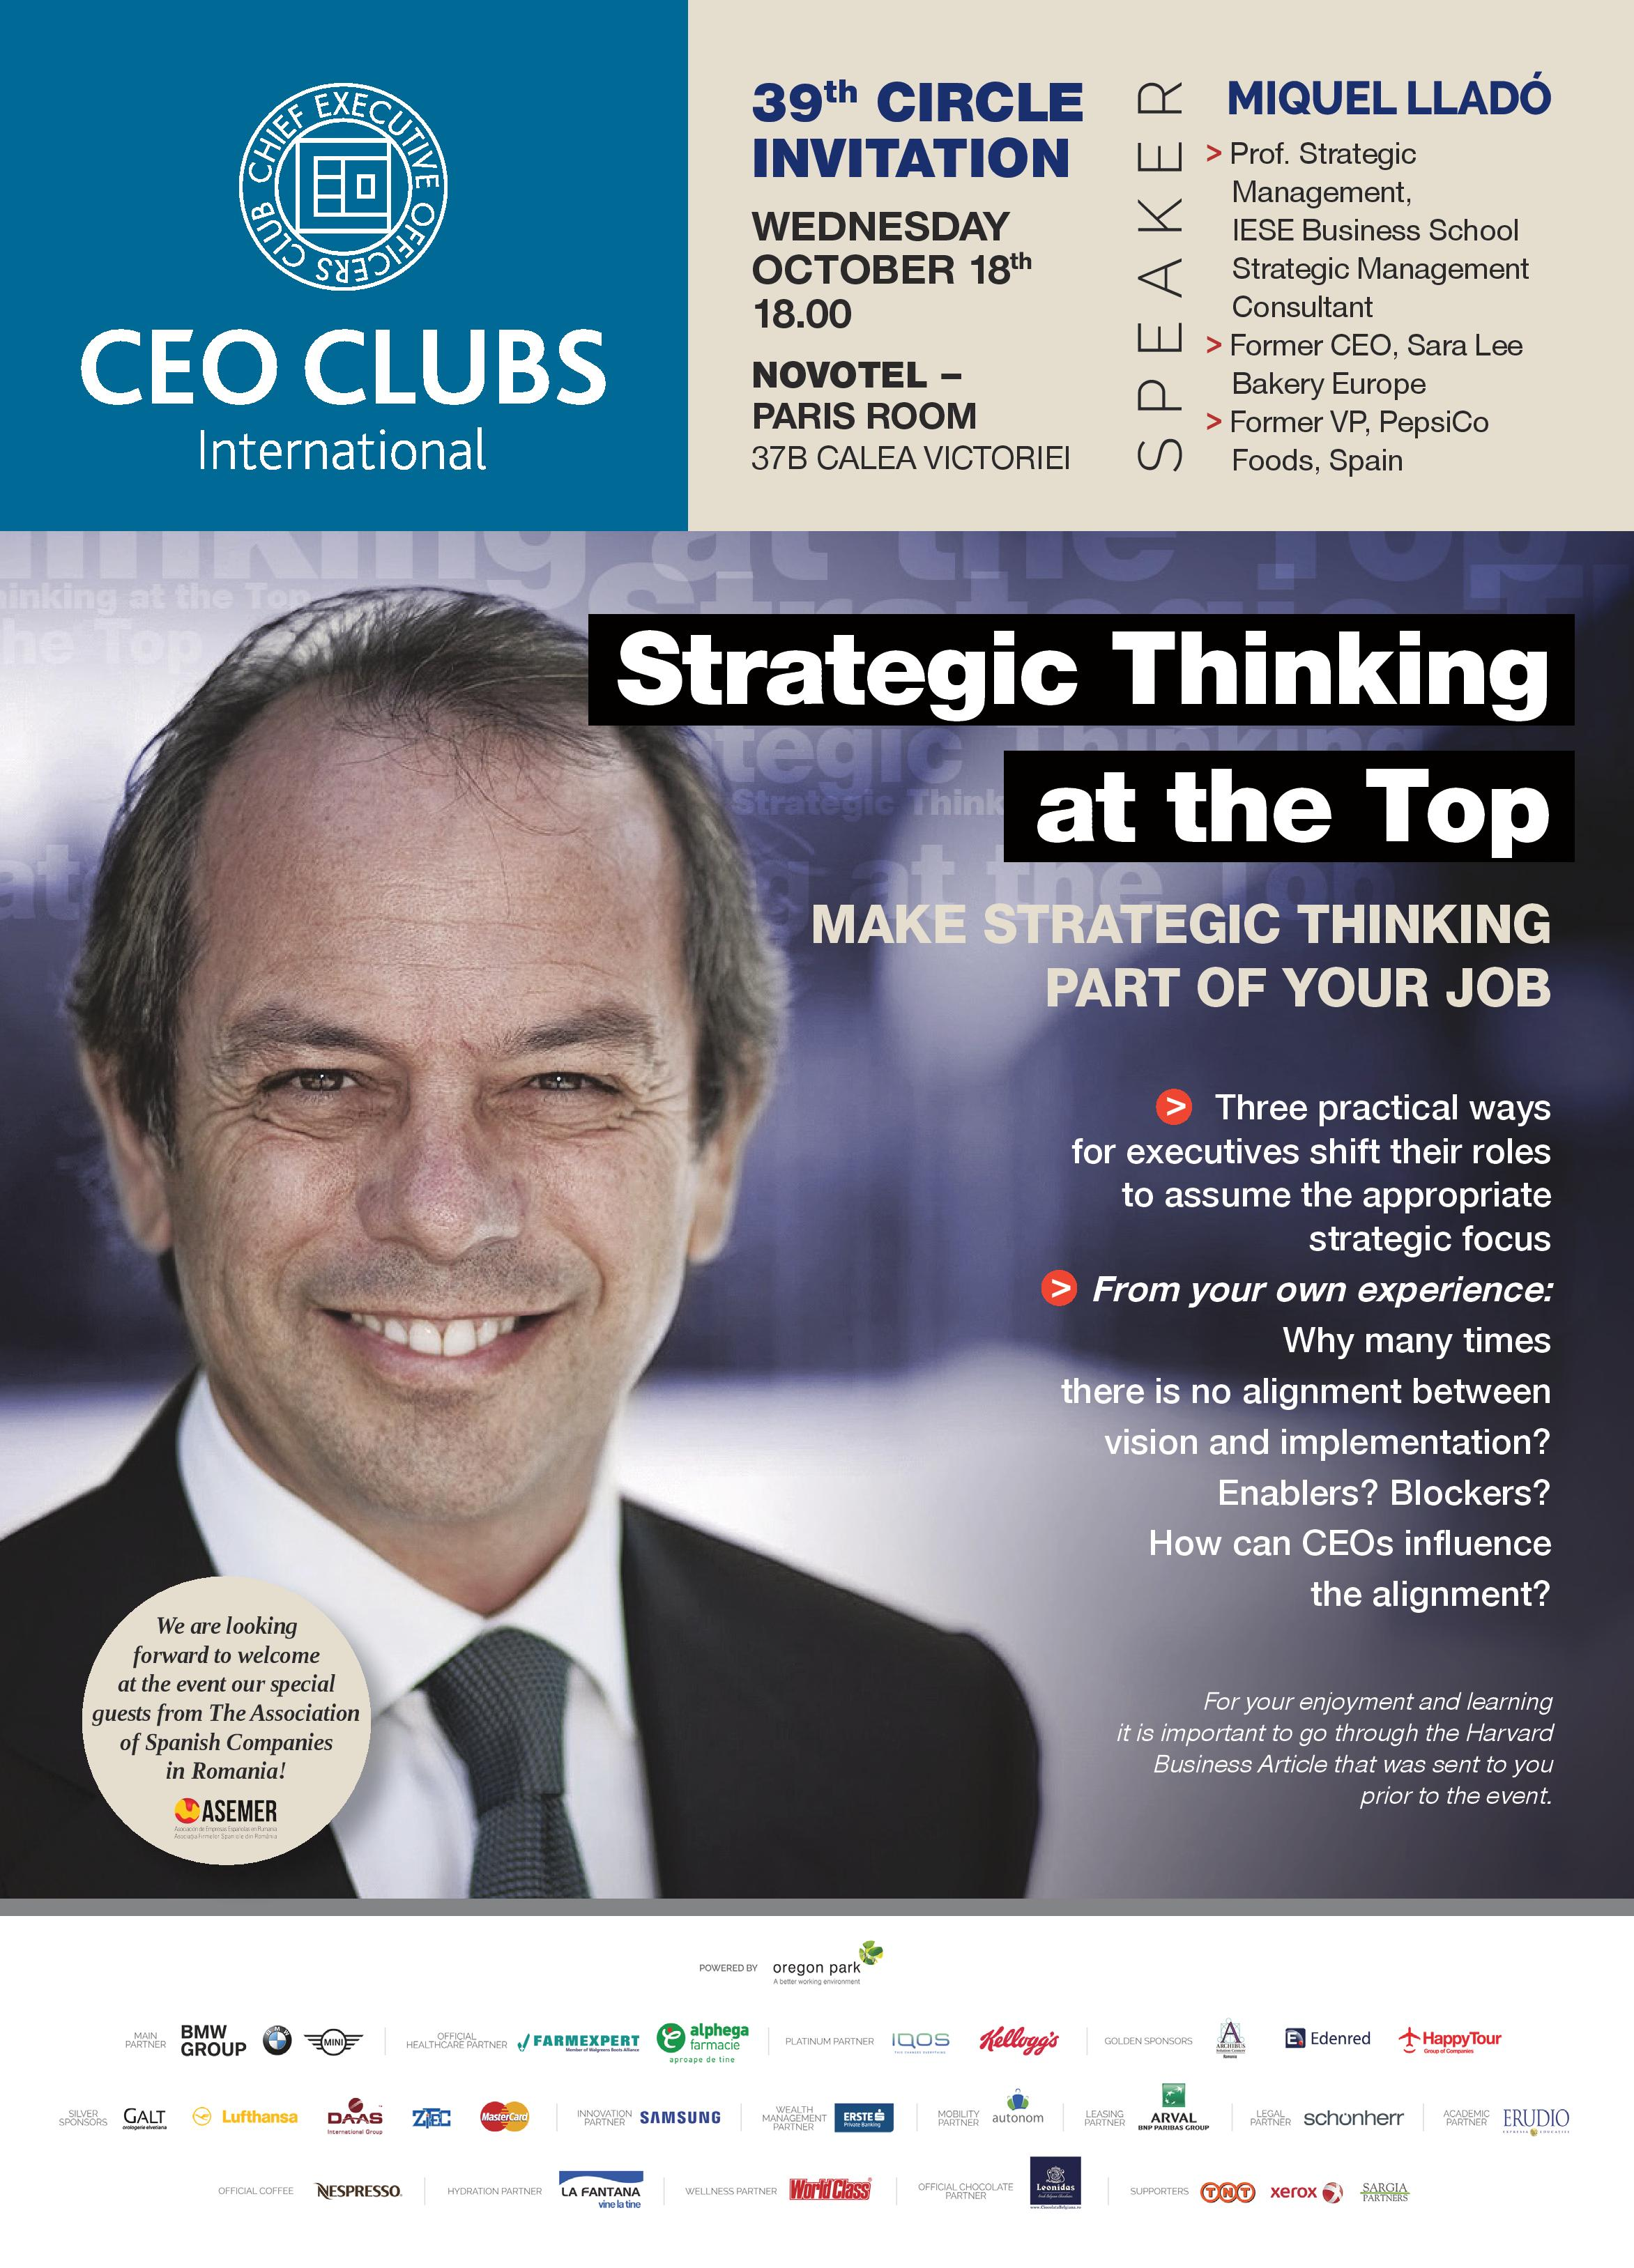 The 39th Circle: Strategic Thinking at the Top